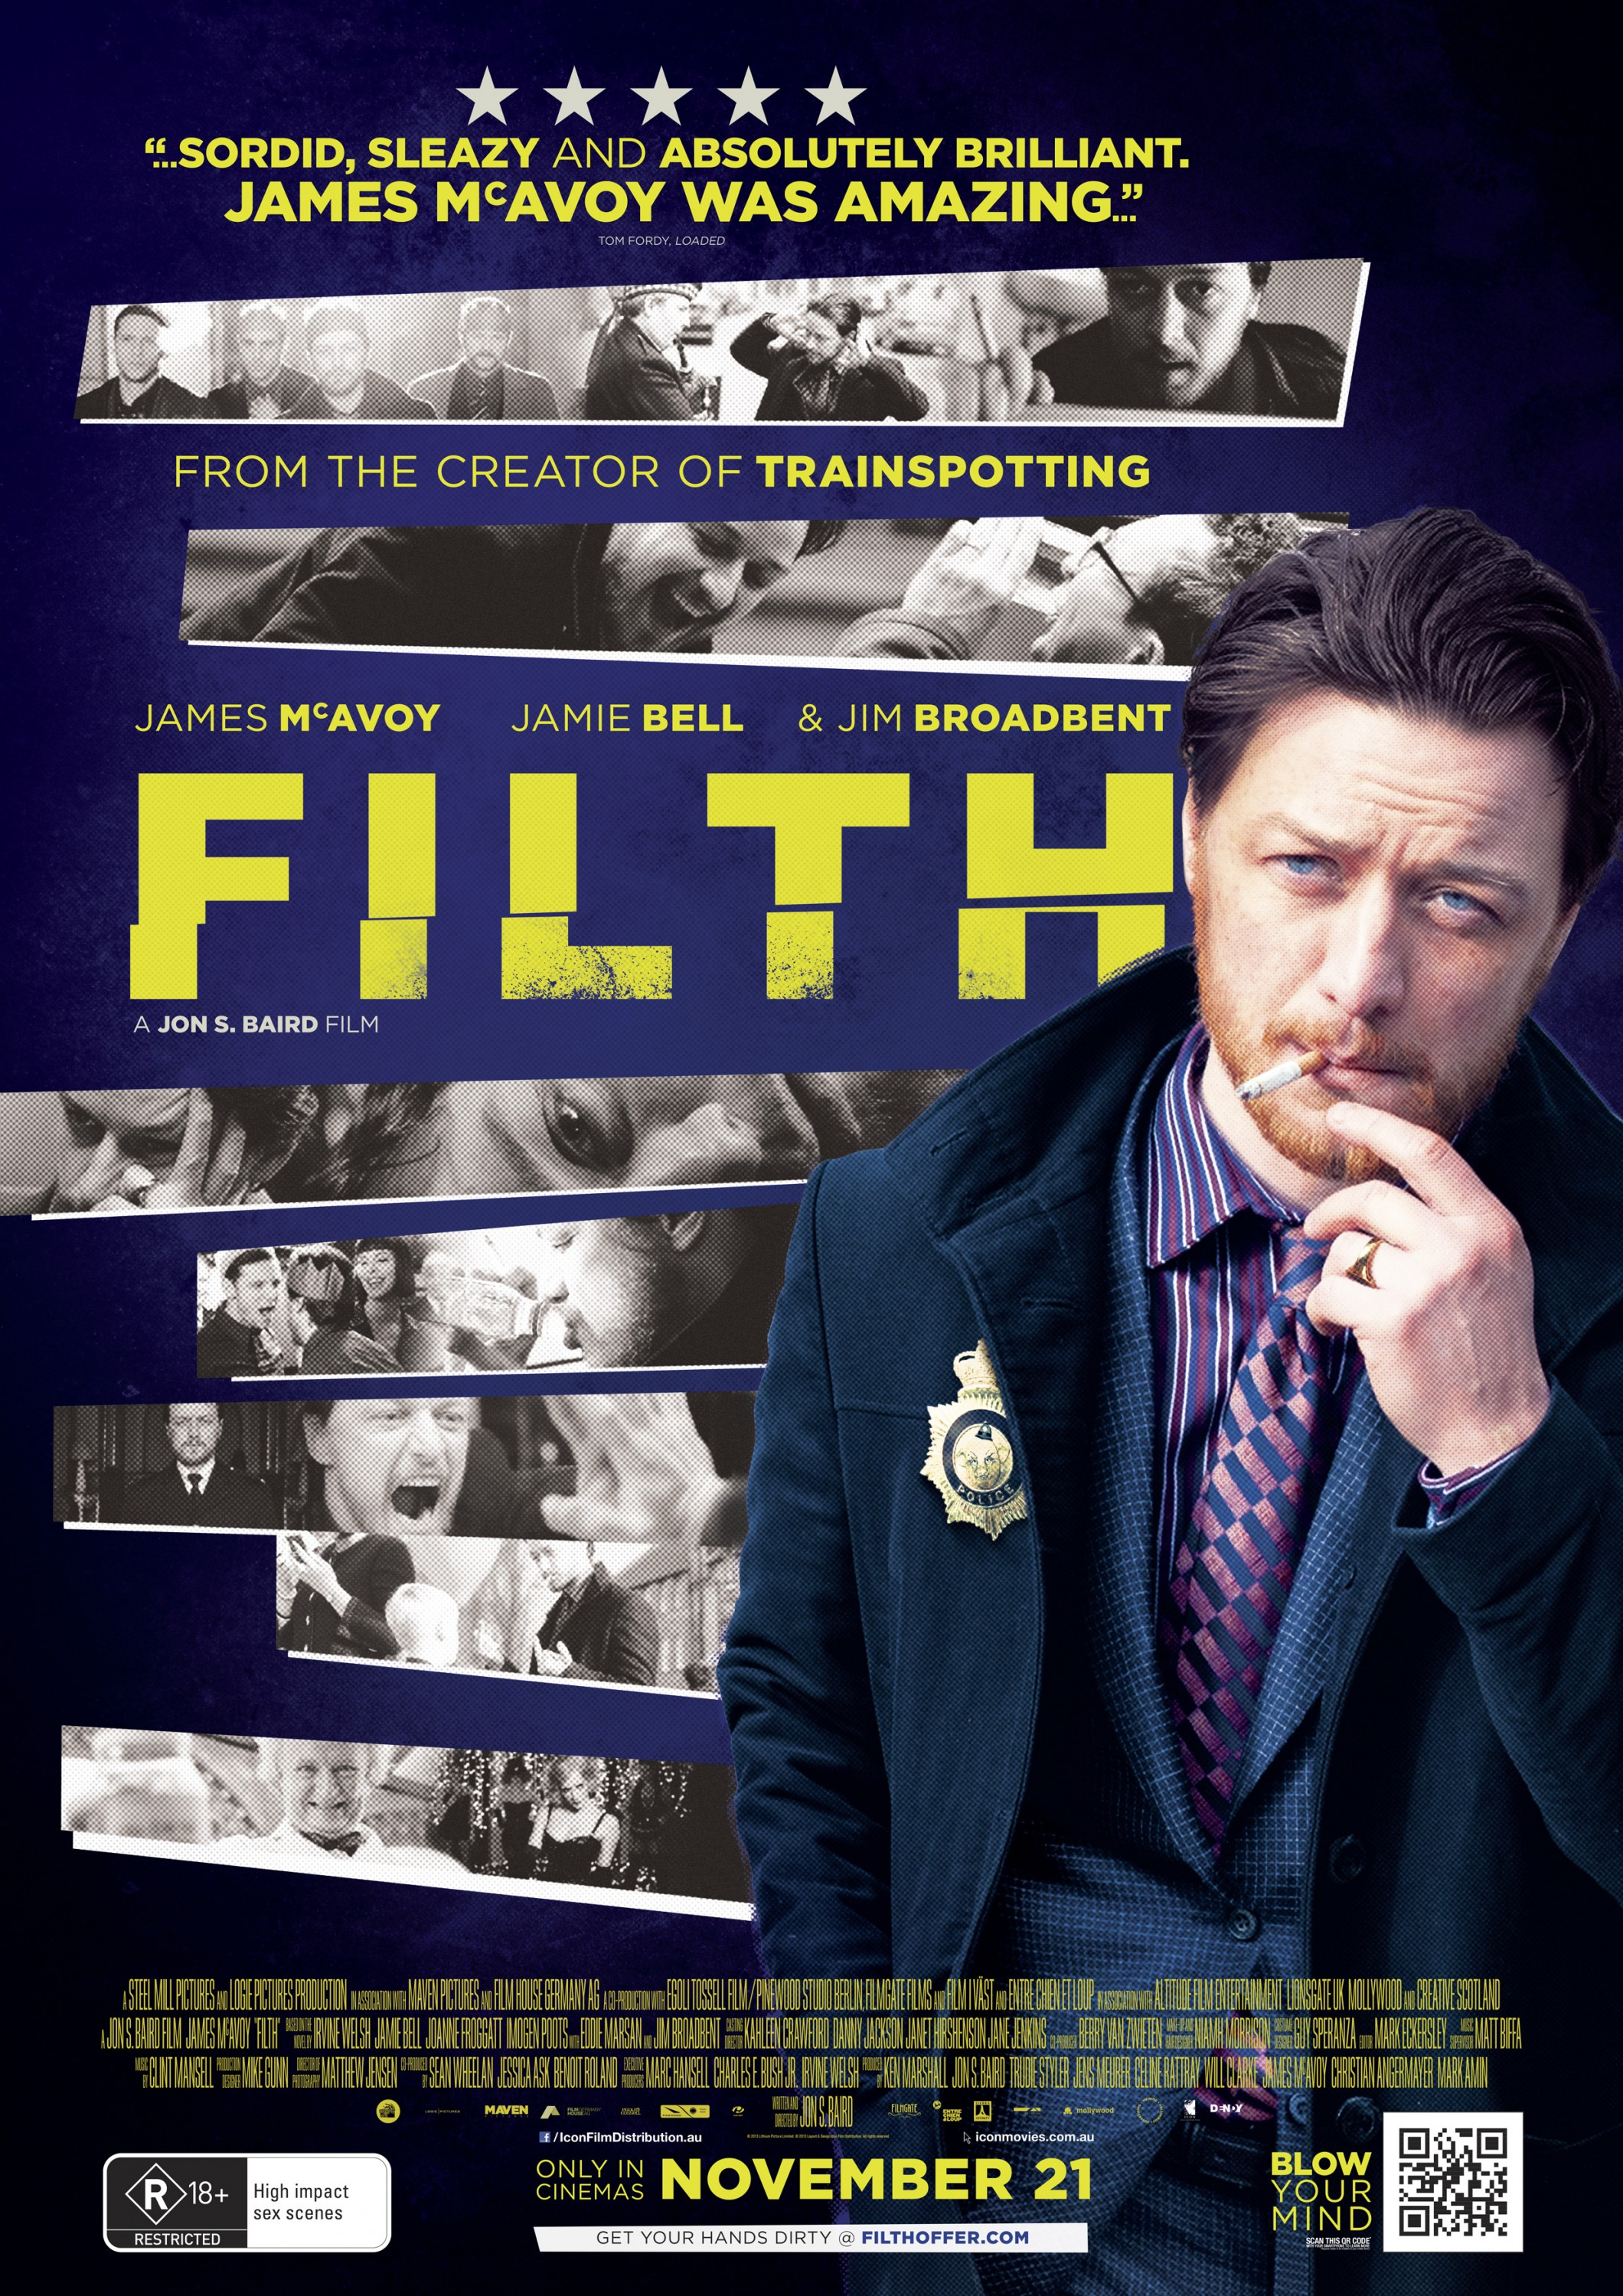 Filth-Official Poster Banner PROMO POSTER-26SETEMBRO2013